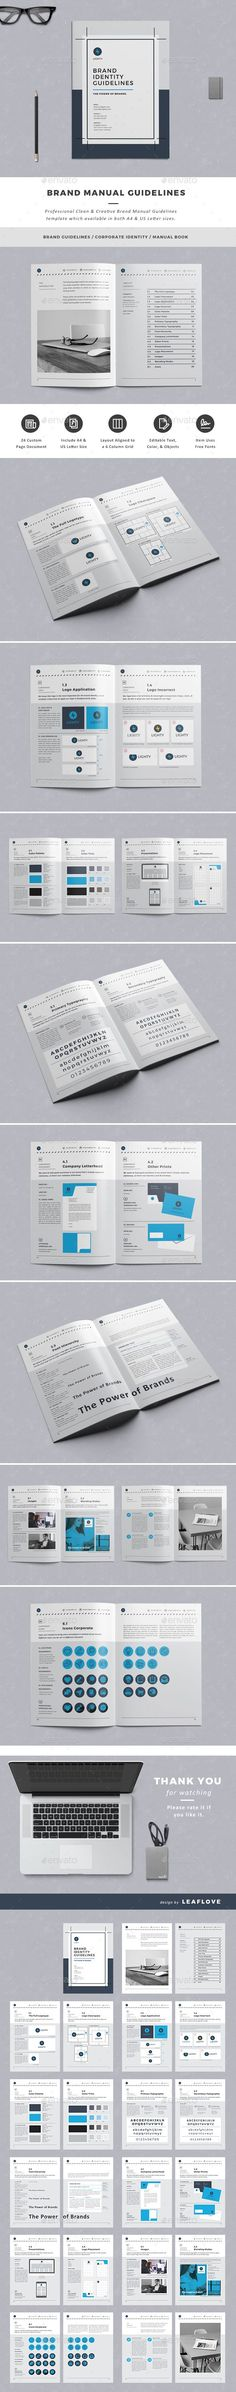 Indesign The Prestige - Brand Manual Template 530845 Design - how to manual template